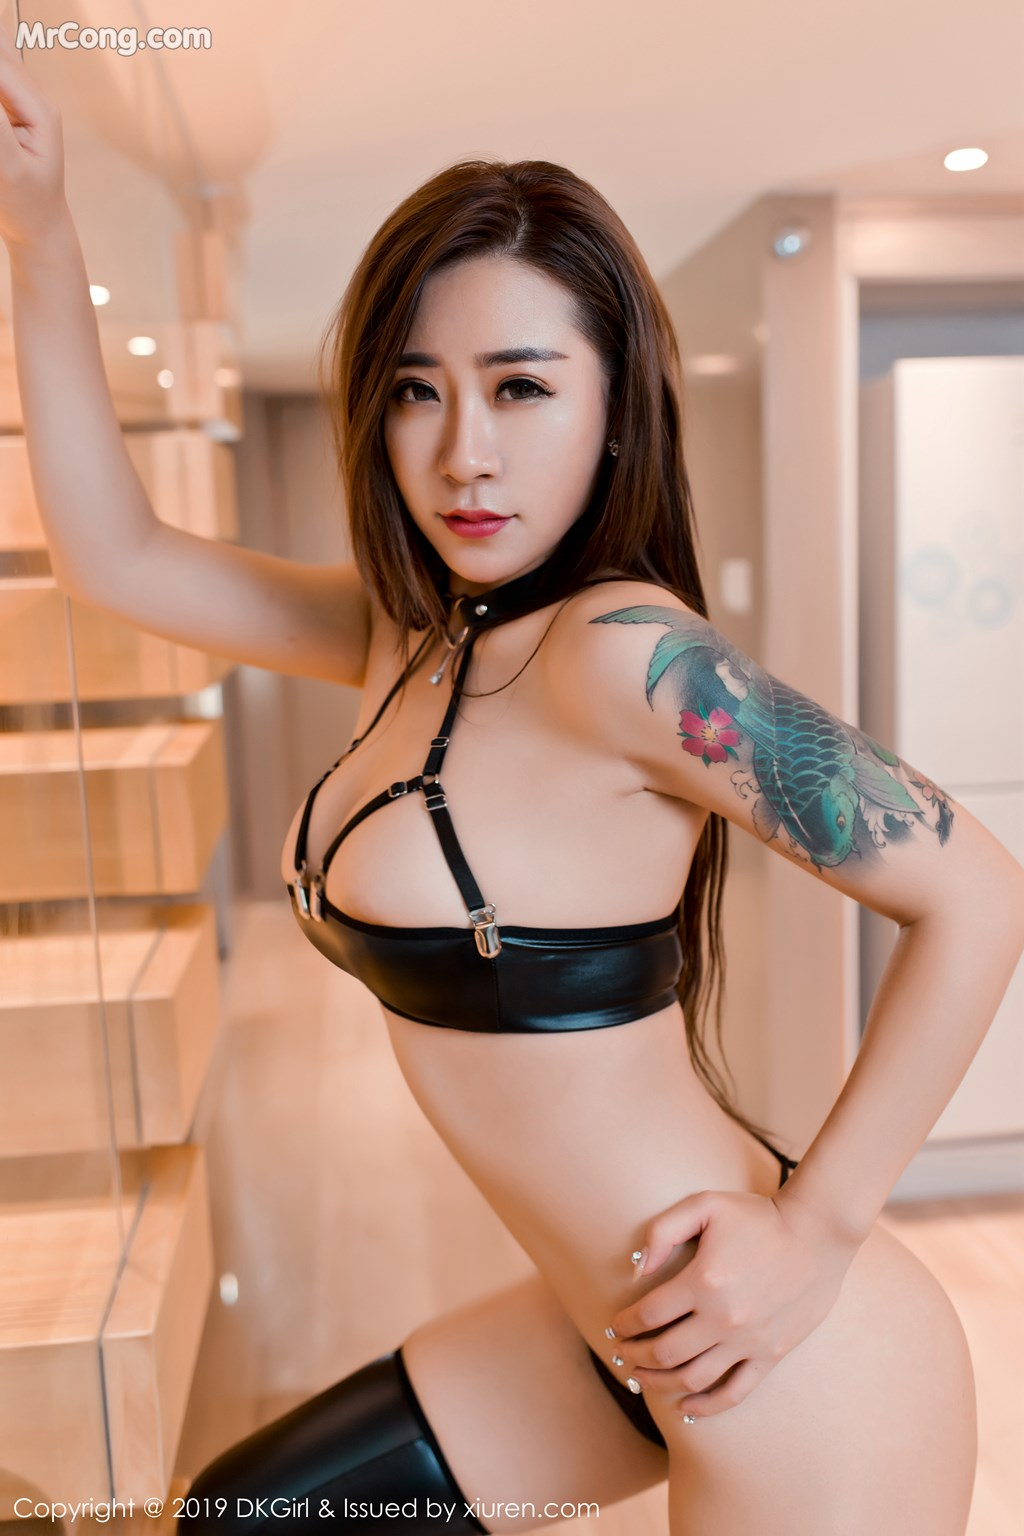 Image DKGirl-Vol.109-Cier-MrCong.com-017 in post DKGirl Vol.109: 雪儿Cier (49 ảnh)